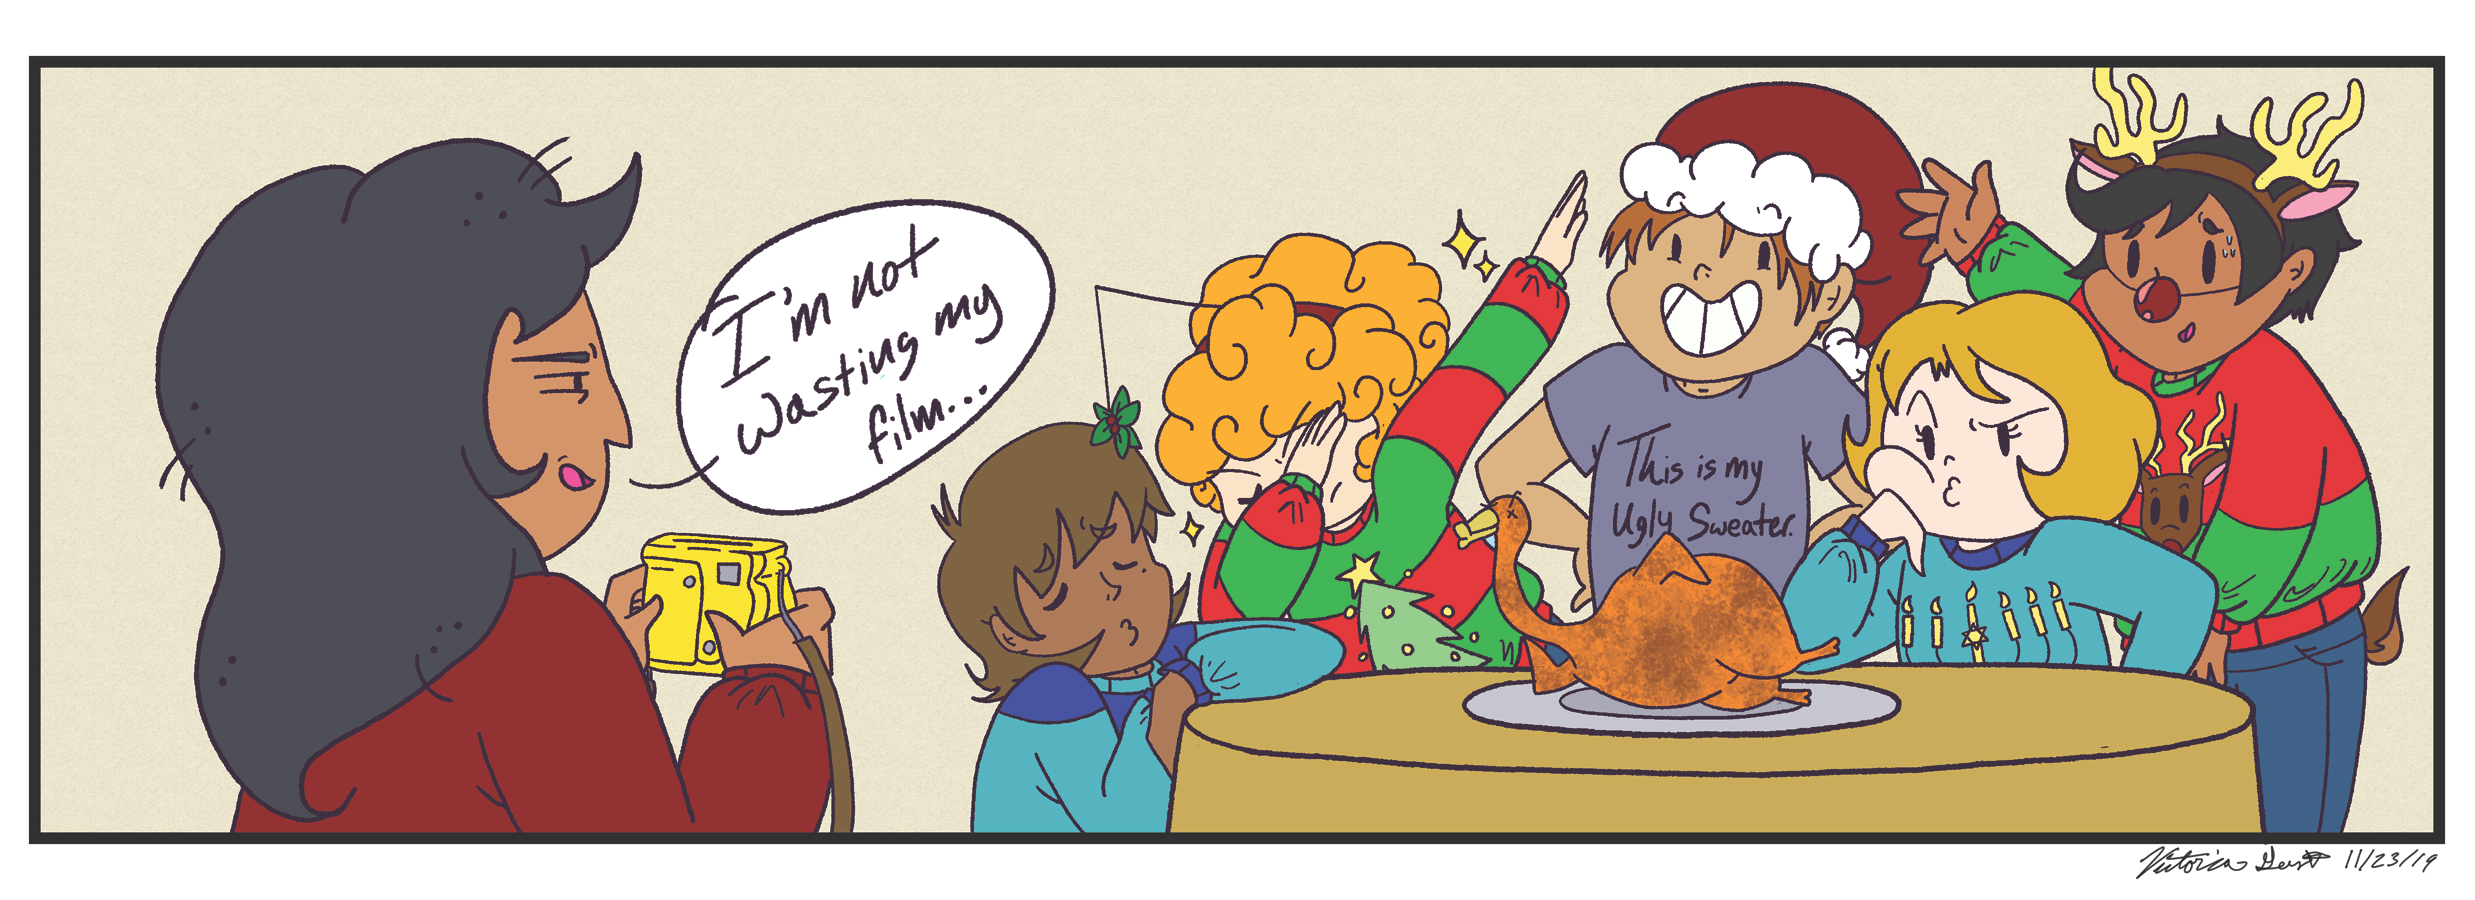 22 West Holiday Comic Khris Cring le 1